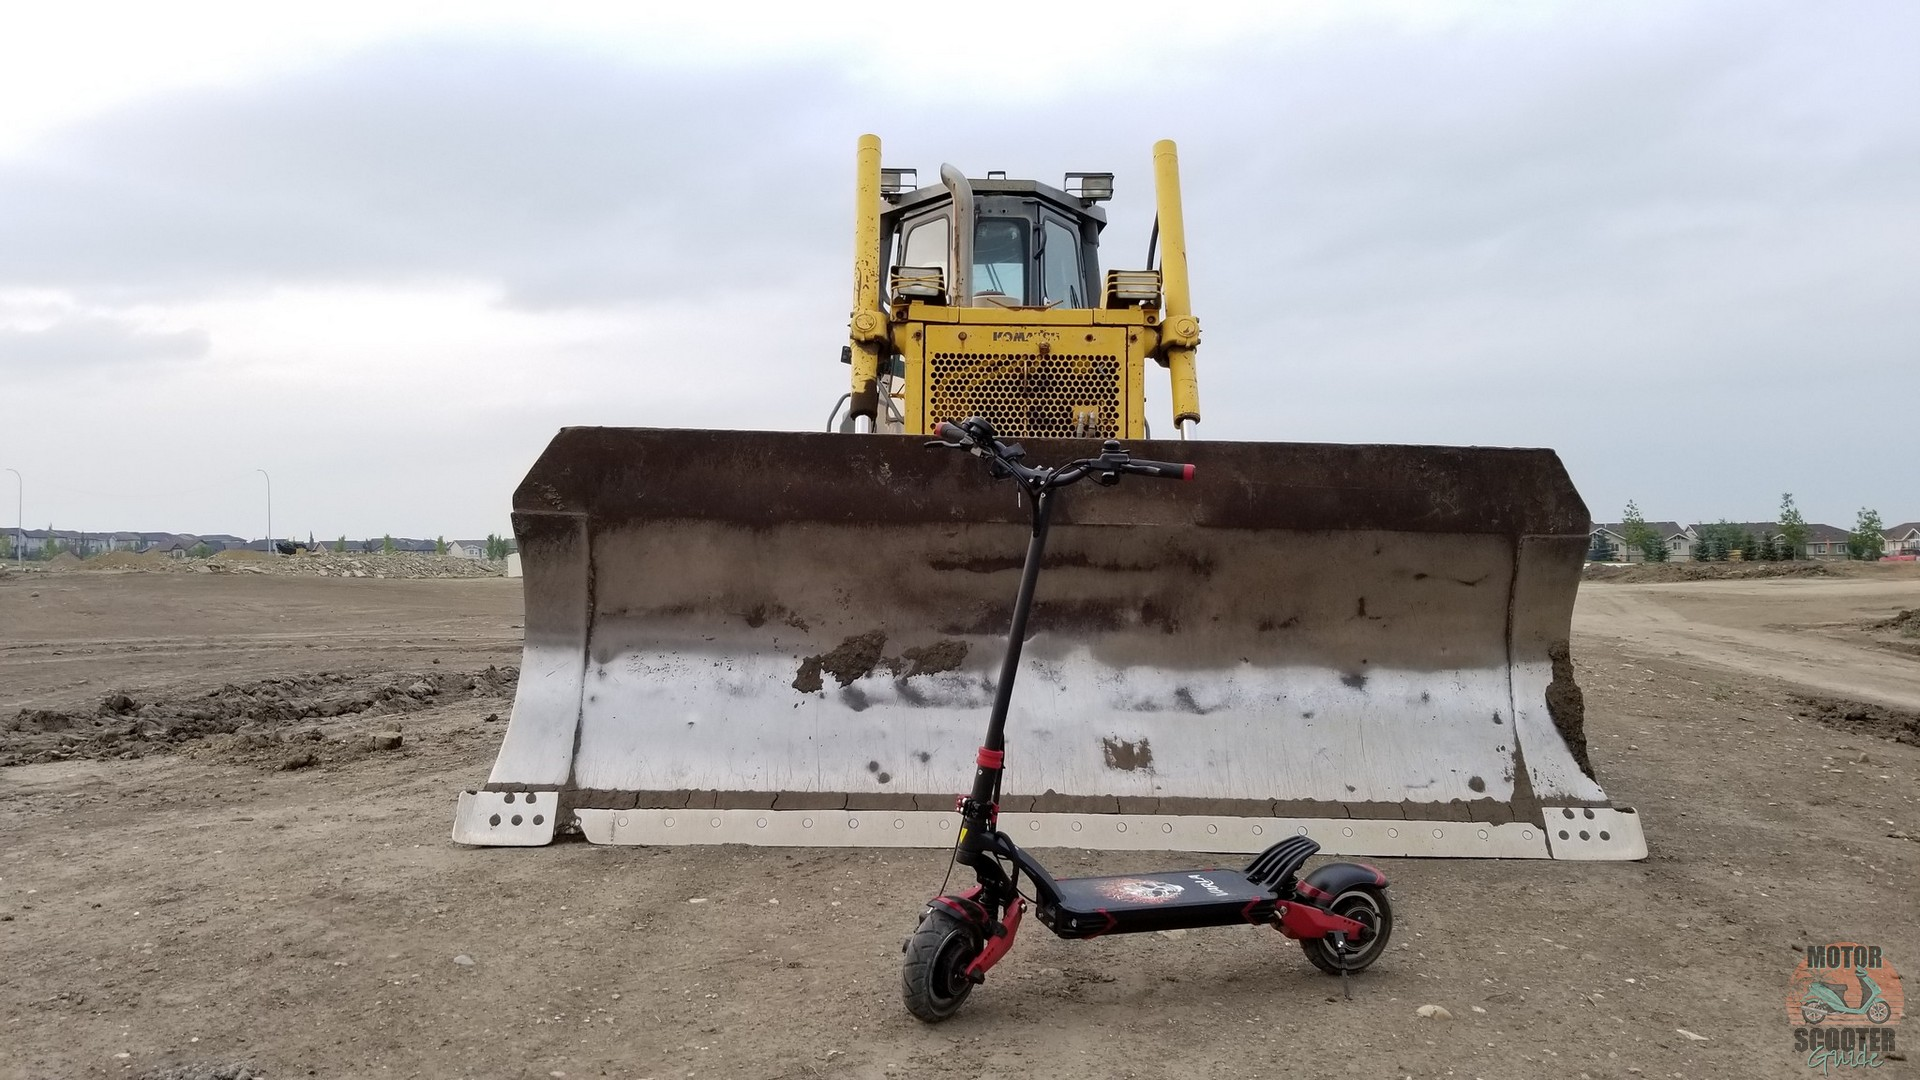 Eagle One scooter parked in front of a bulldozer